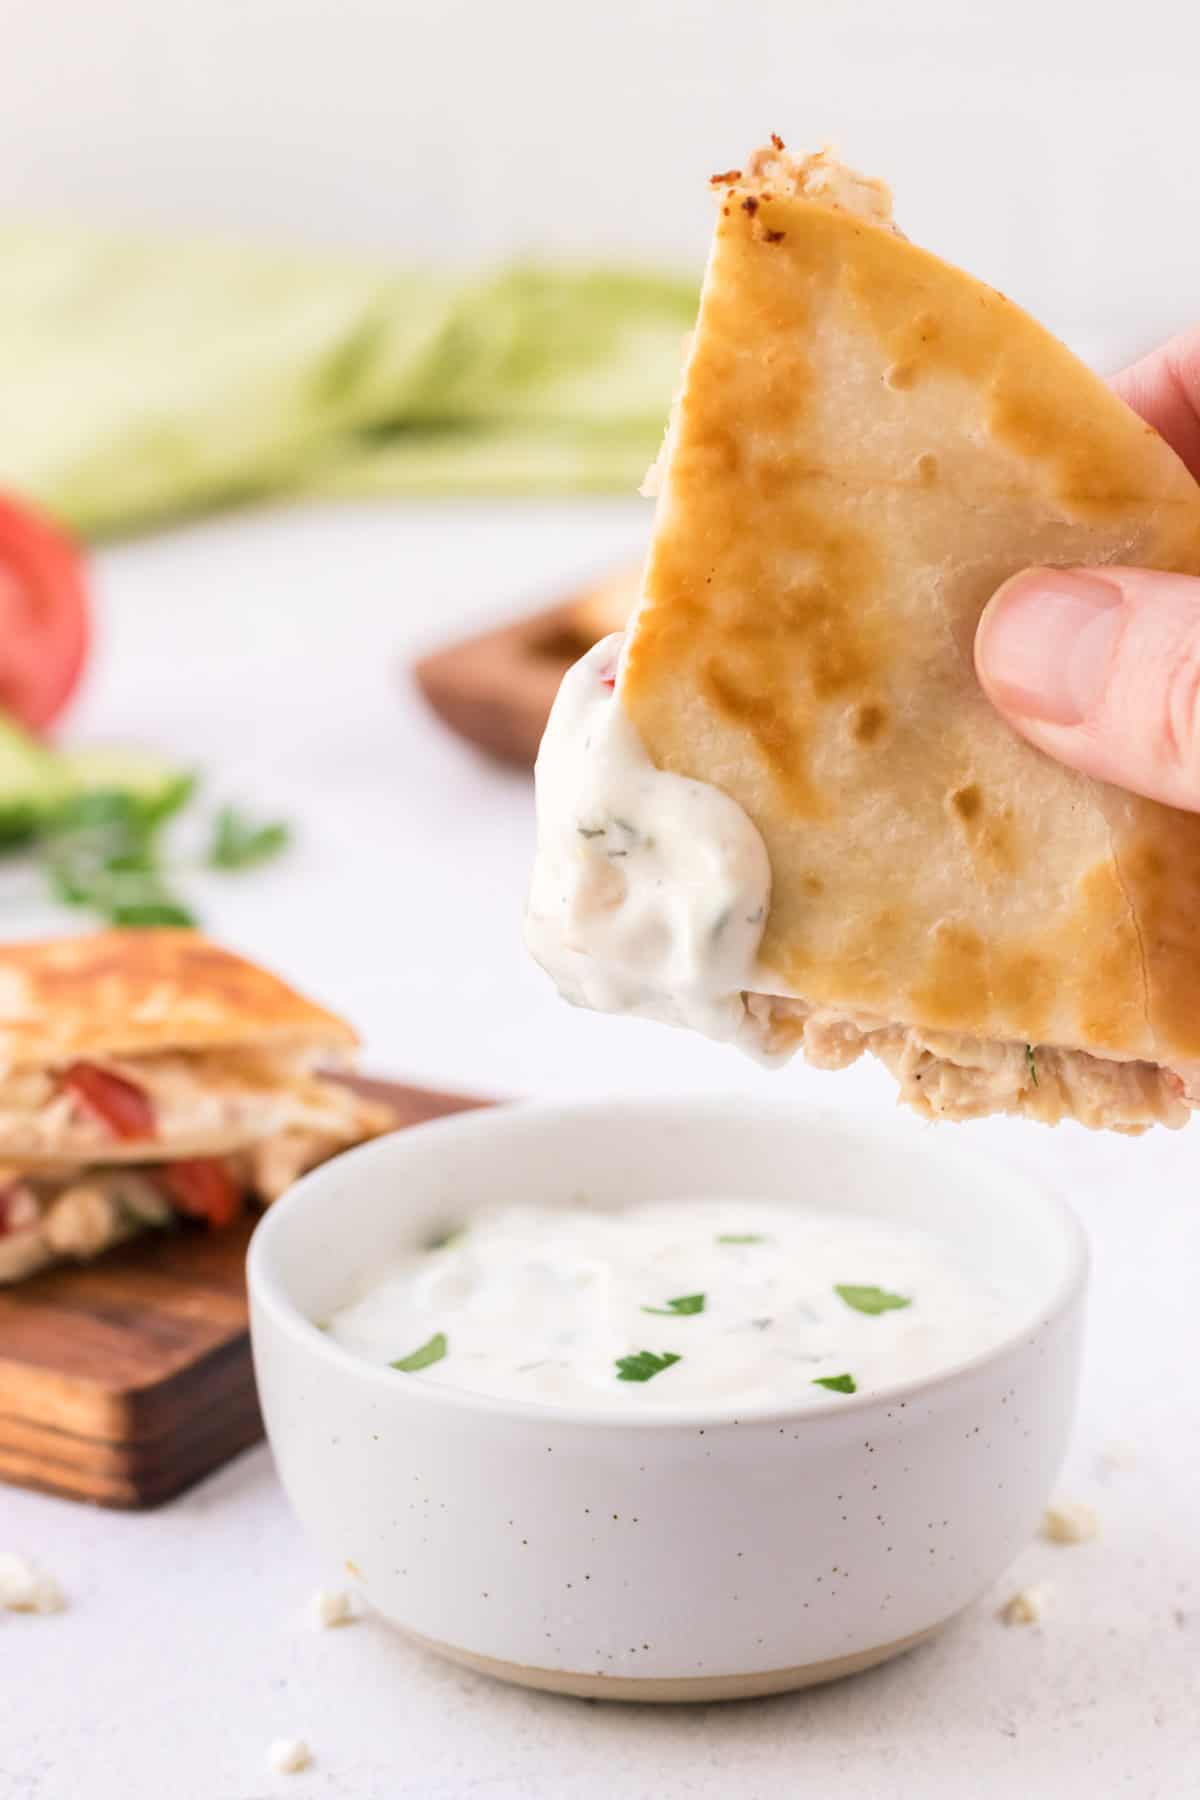 Triangle of Greek quesadilla being dipped in tzatziki sauce and cutting board of stacked quesadillas and green linen in background.